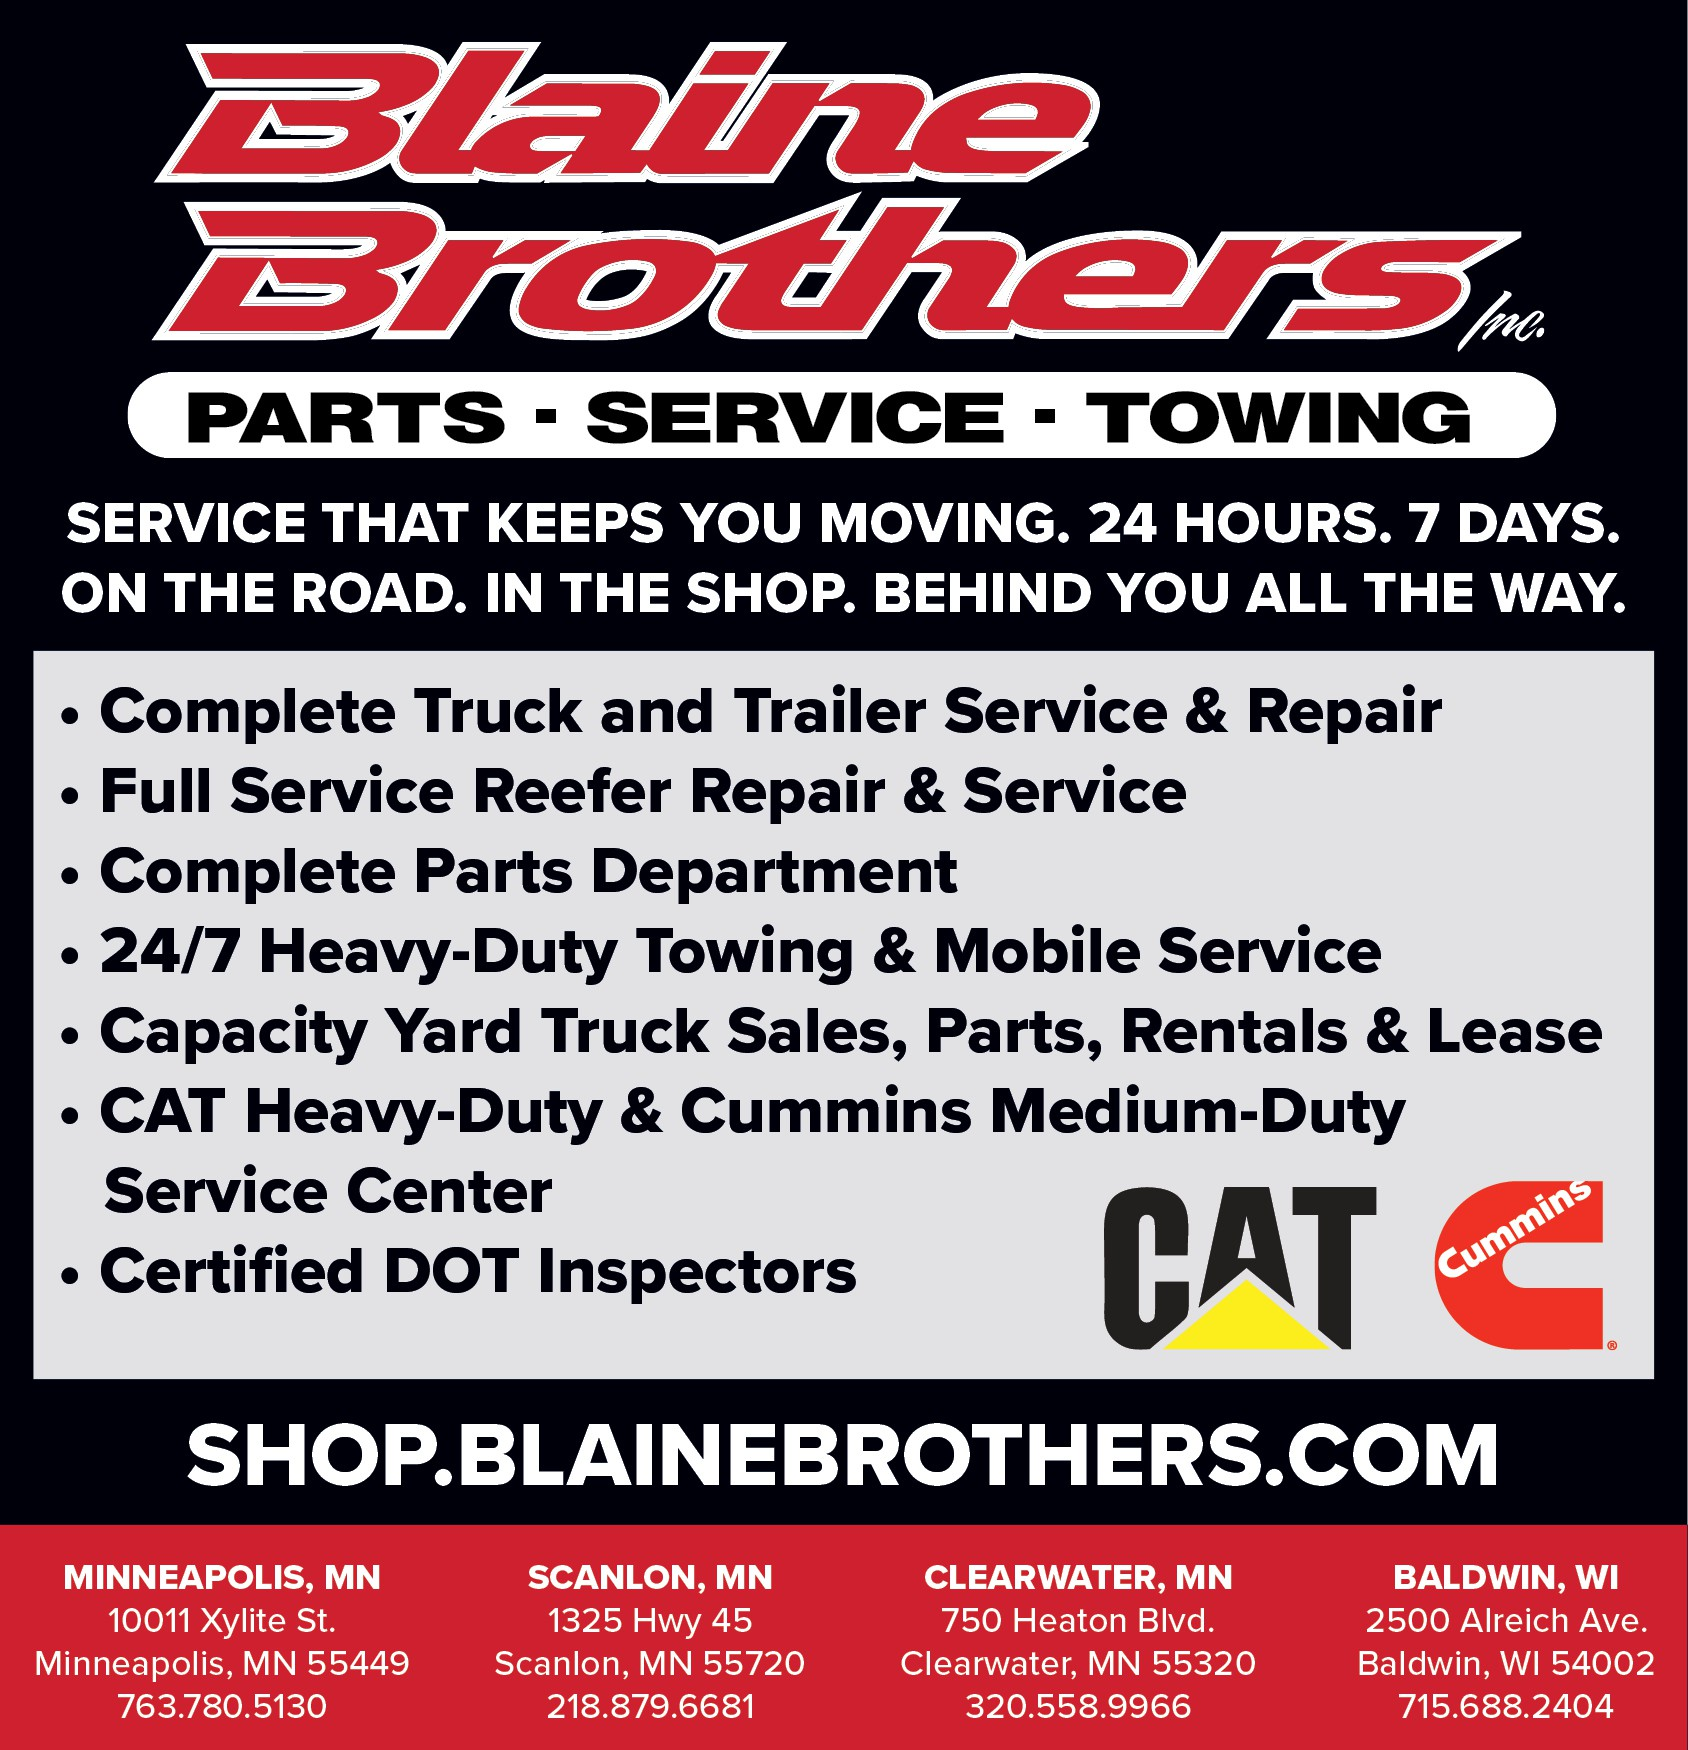 http://www.blainebrothers.com